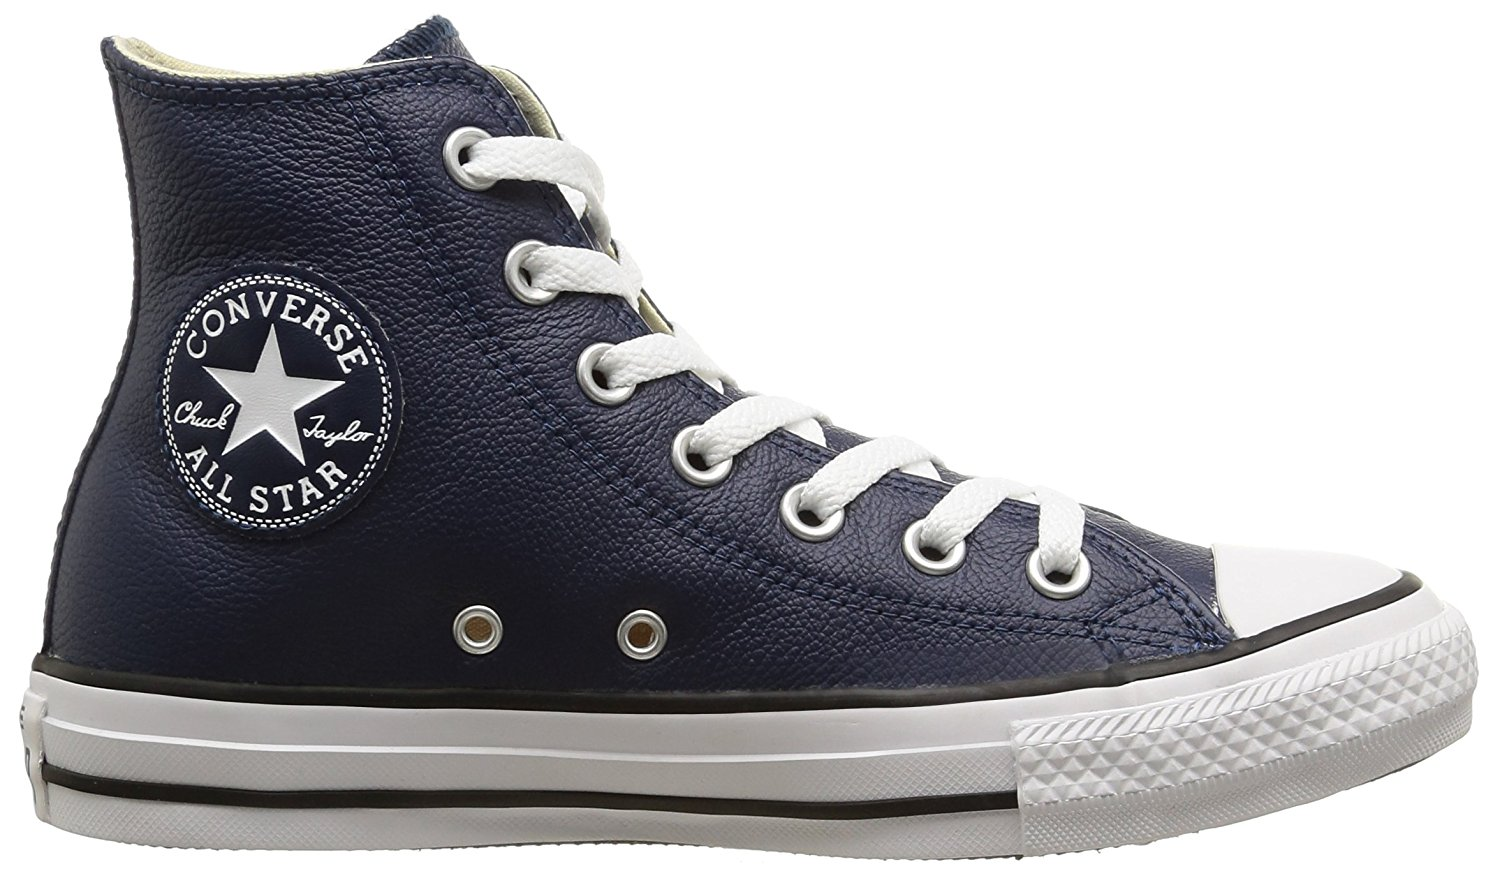 Converse 14 Chuck Taylor All Star High Nighttime Men's Shoes Navy Blue/White 149490c